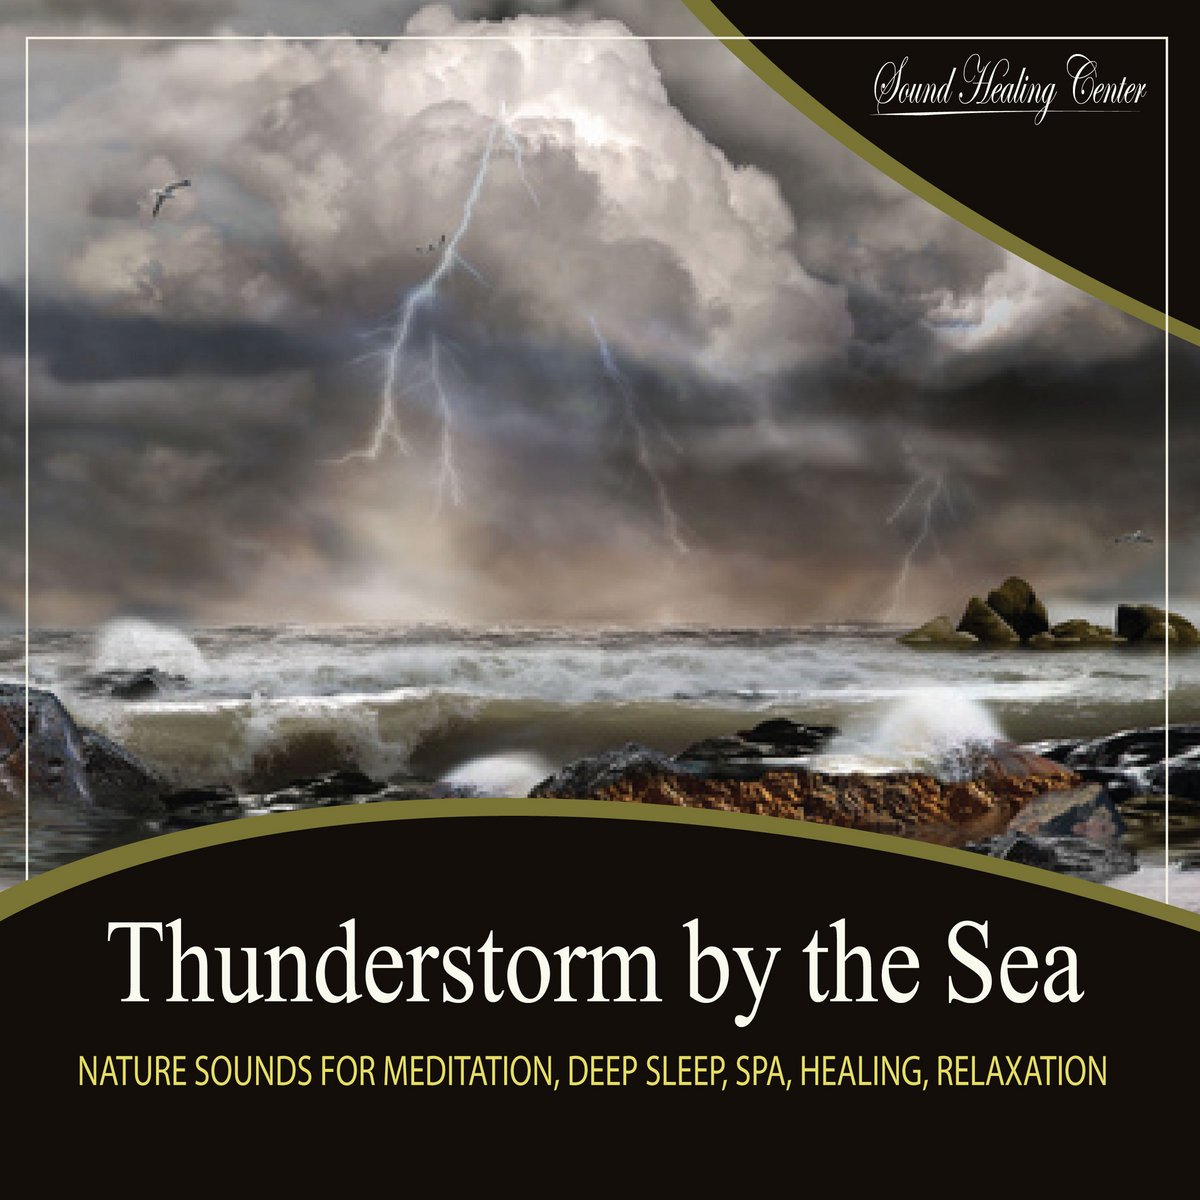 Thunderstorm By the Sea: Nature Sounds for Meditation, Deep